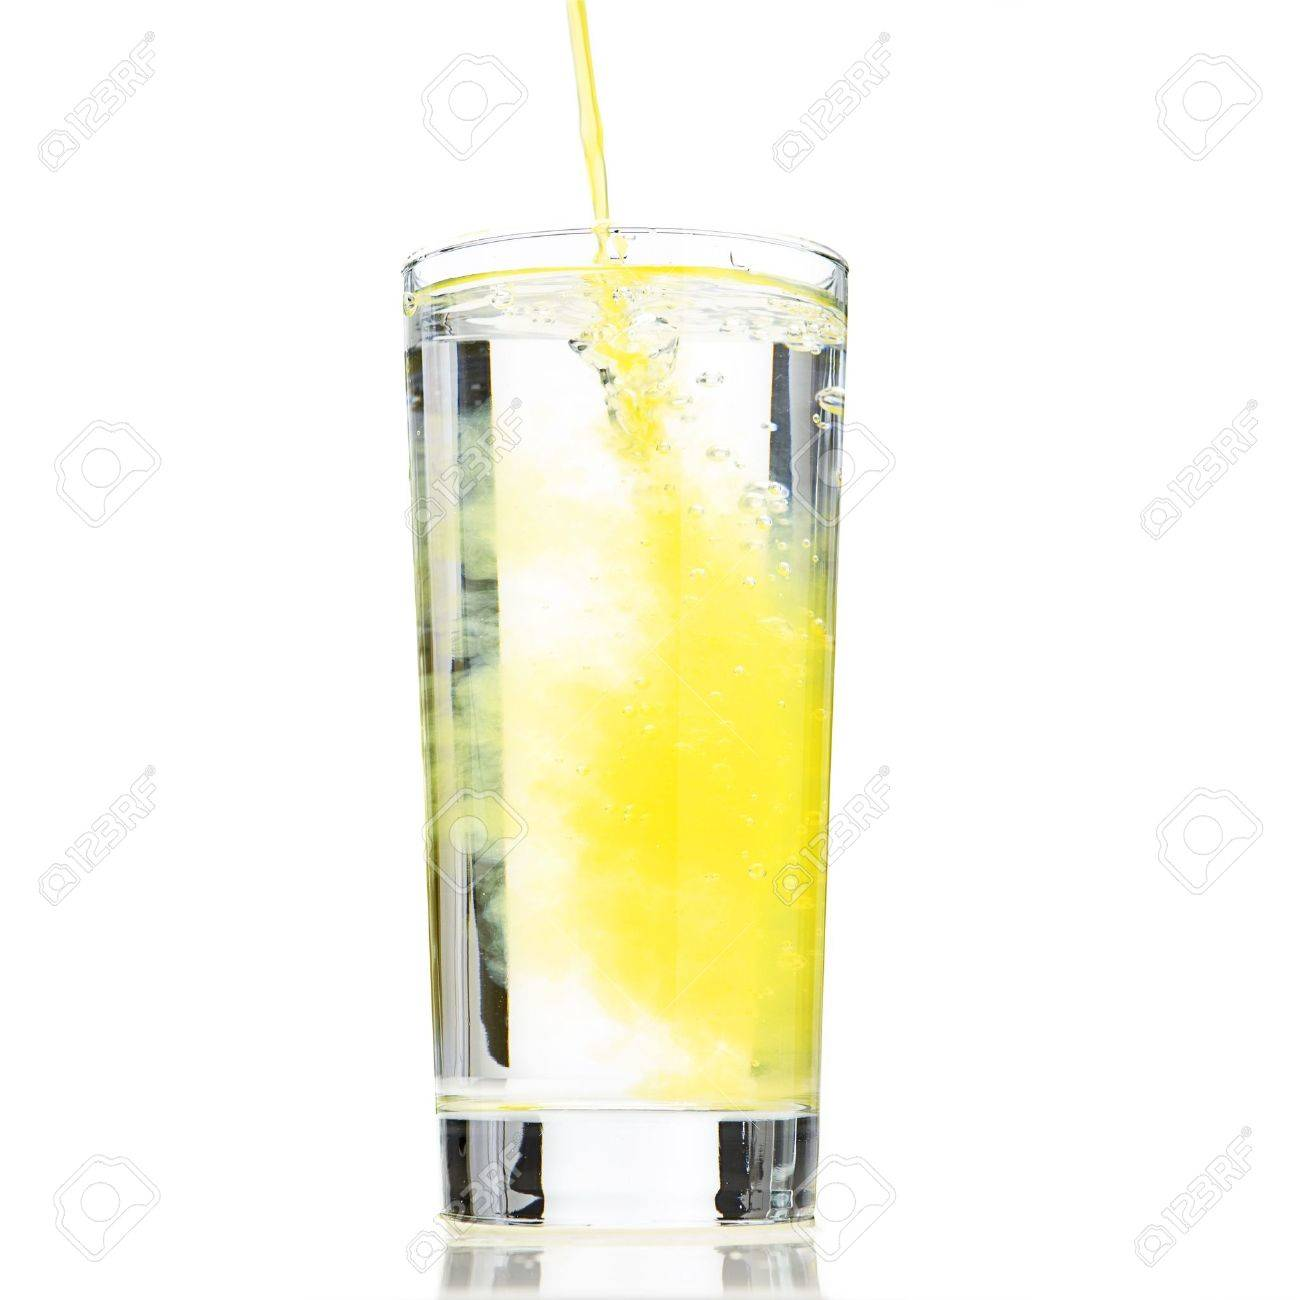 Glass of water been diluted to orange drink Stock Photo - 6685535